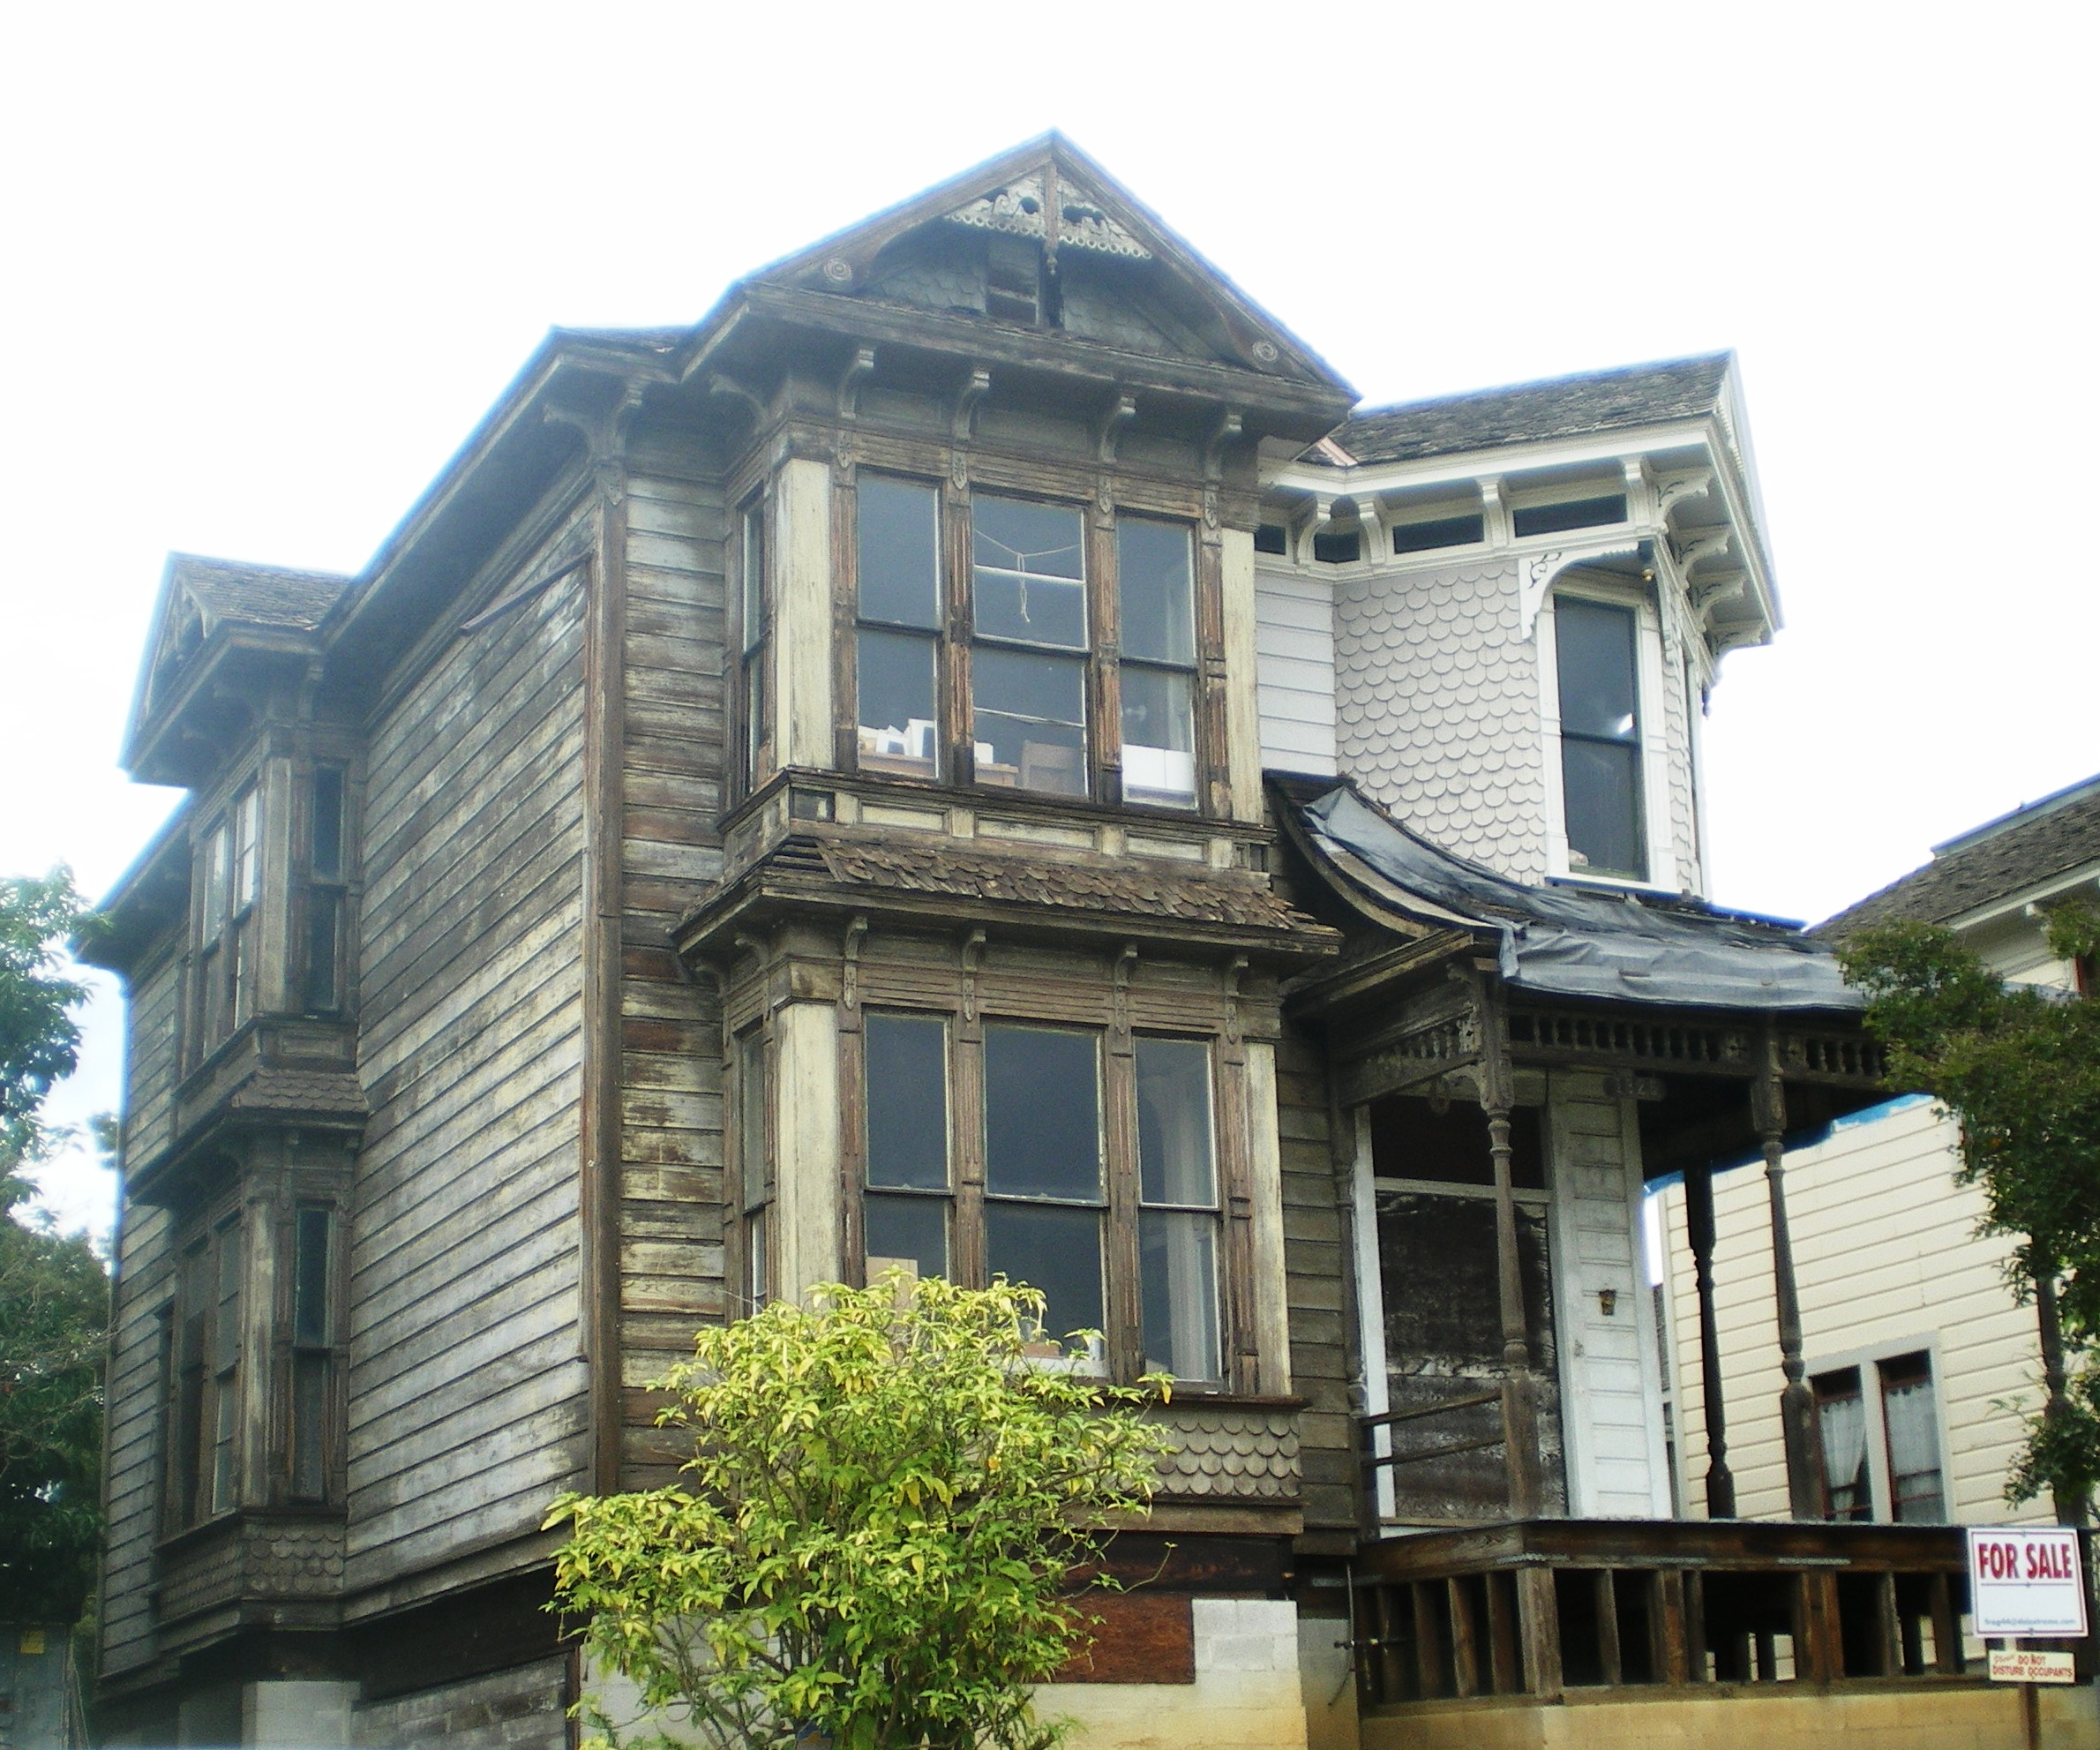 File:House at 1325 Carroll Ave., Los Angeles.JPG